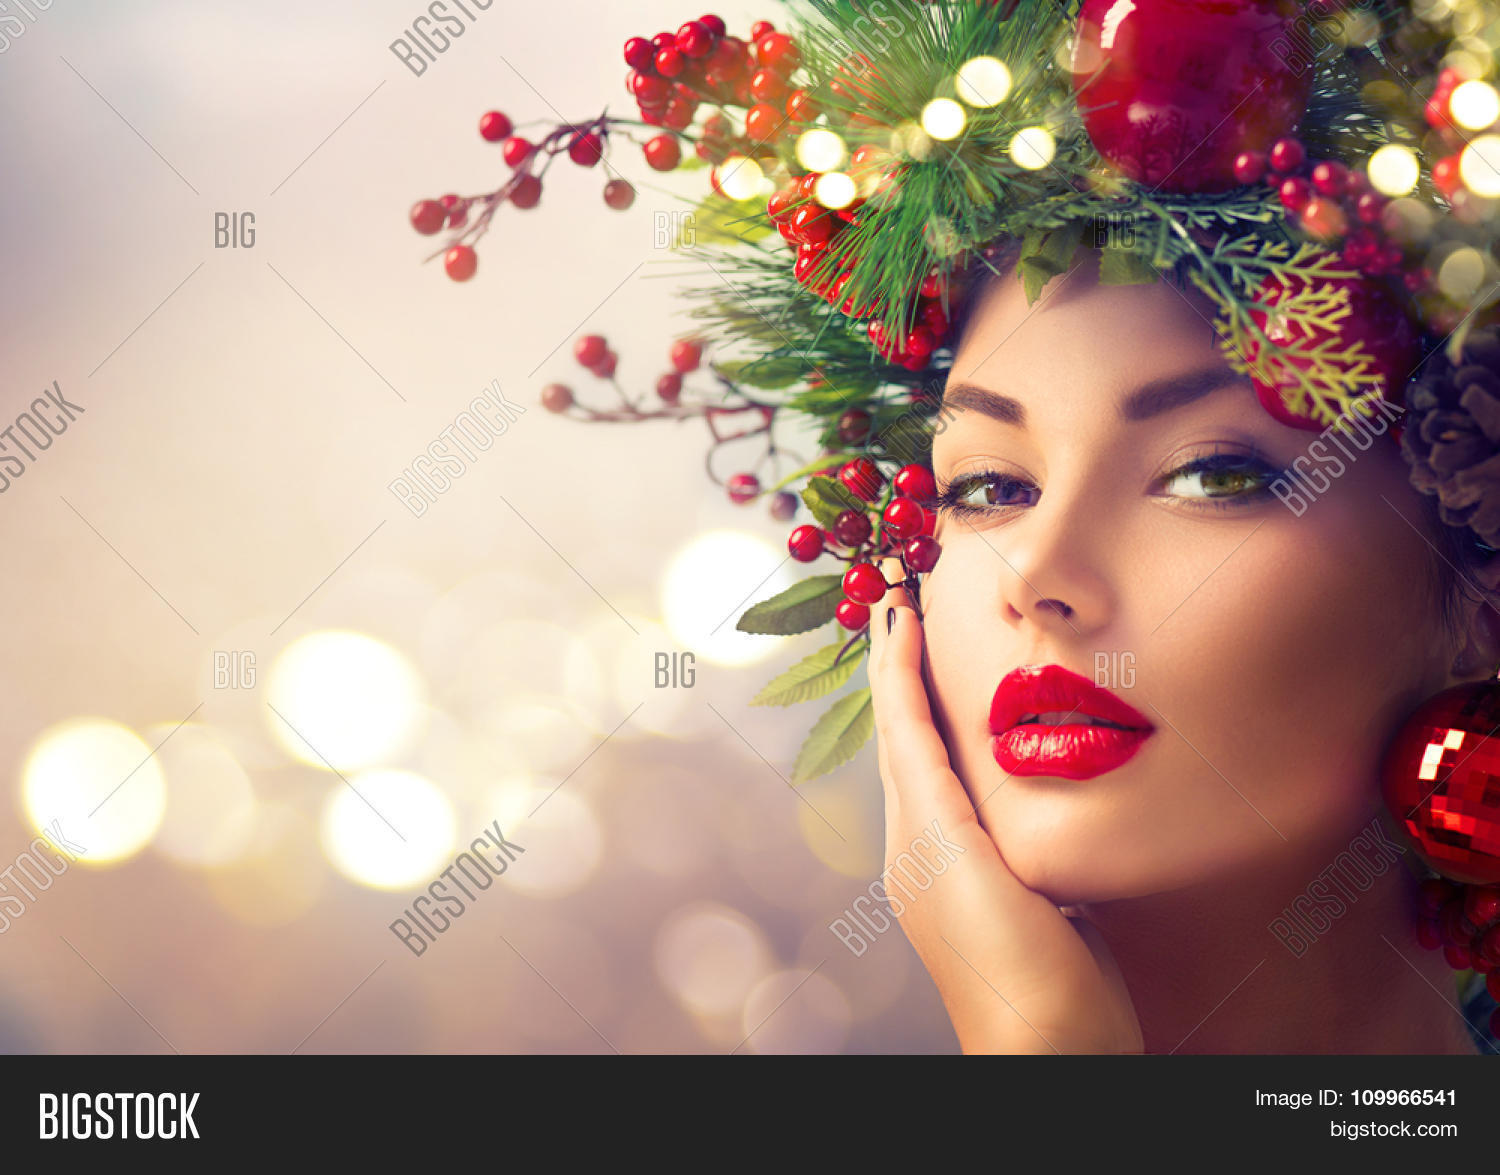 Christmas Model.Christmas Winter Image Photo Free Trial Bigstock